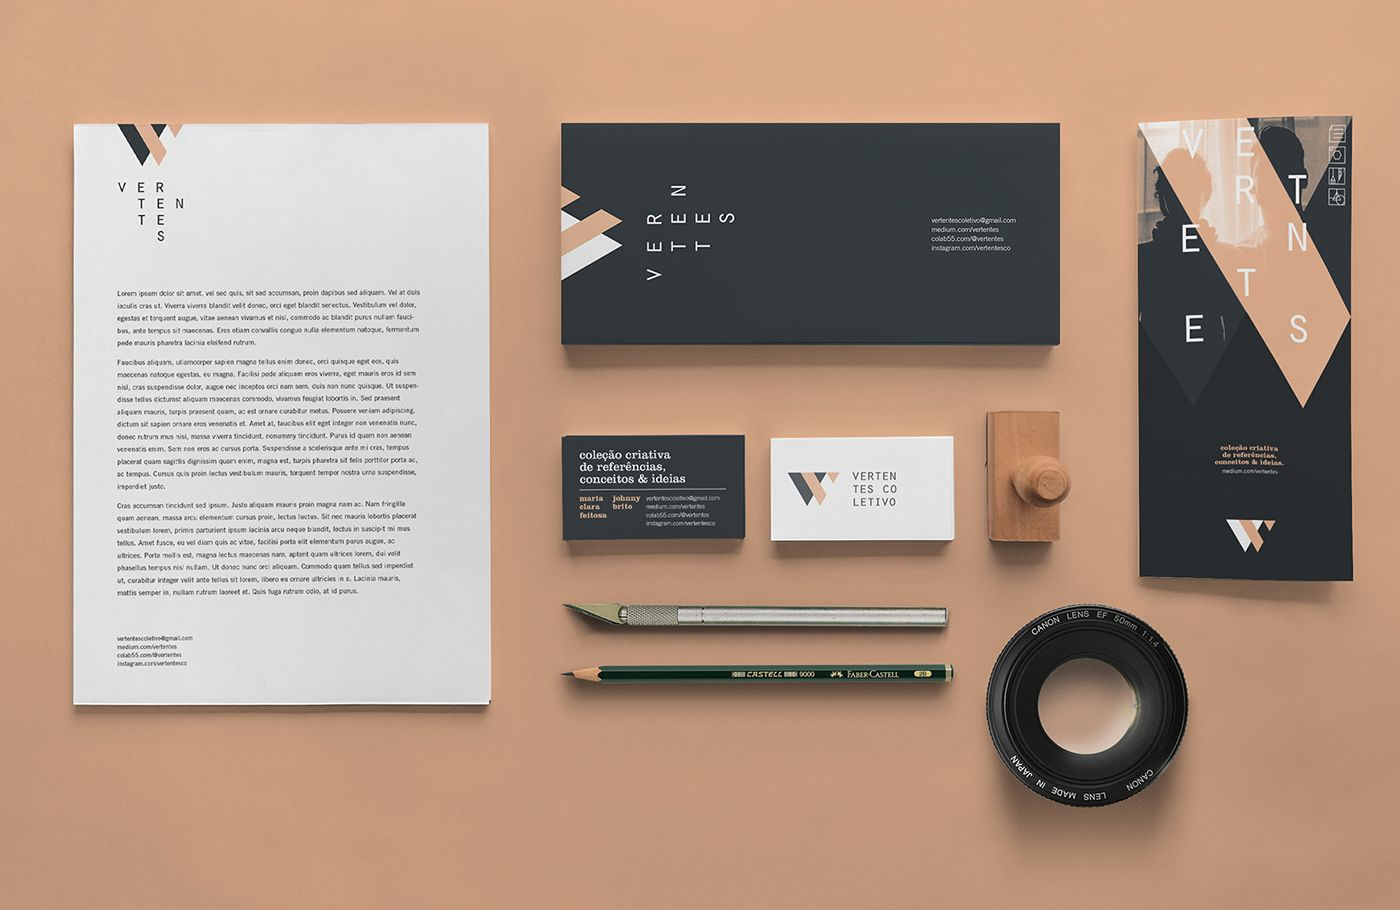 Brand Identity for Vertentes Coletivo a collab